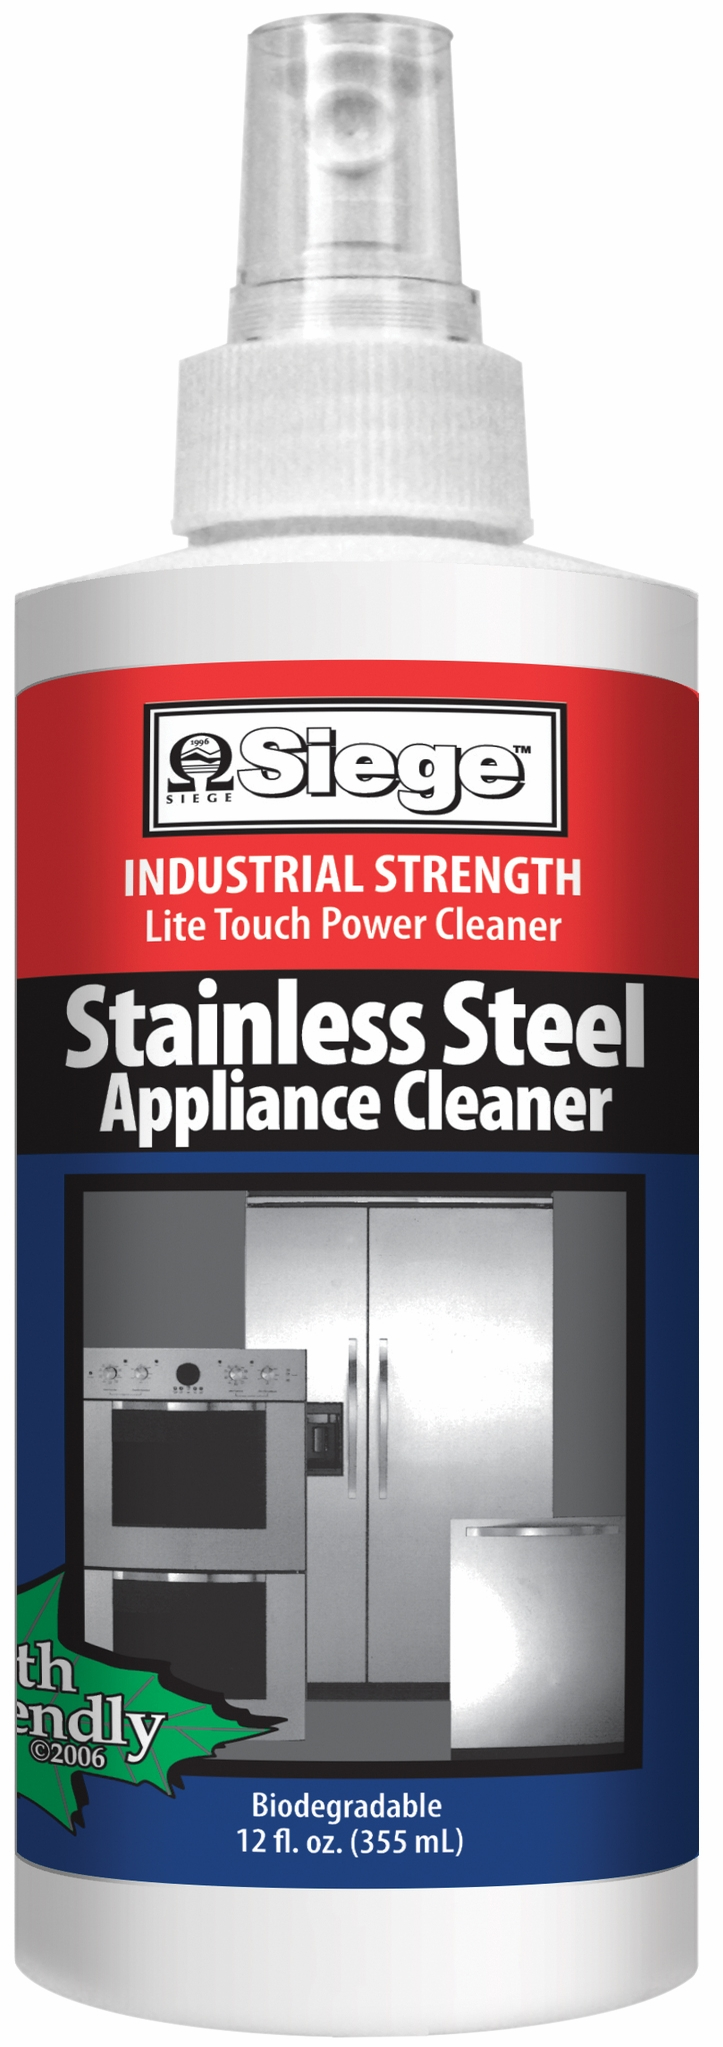 782 Siege Stainless Steel Appliance Cleaner